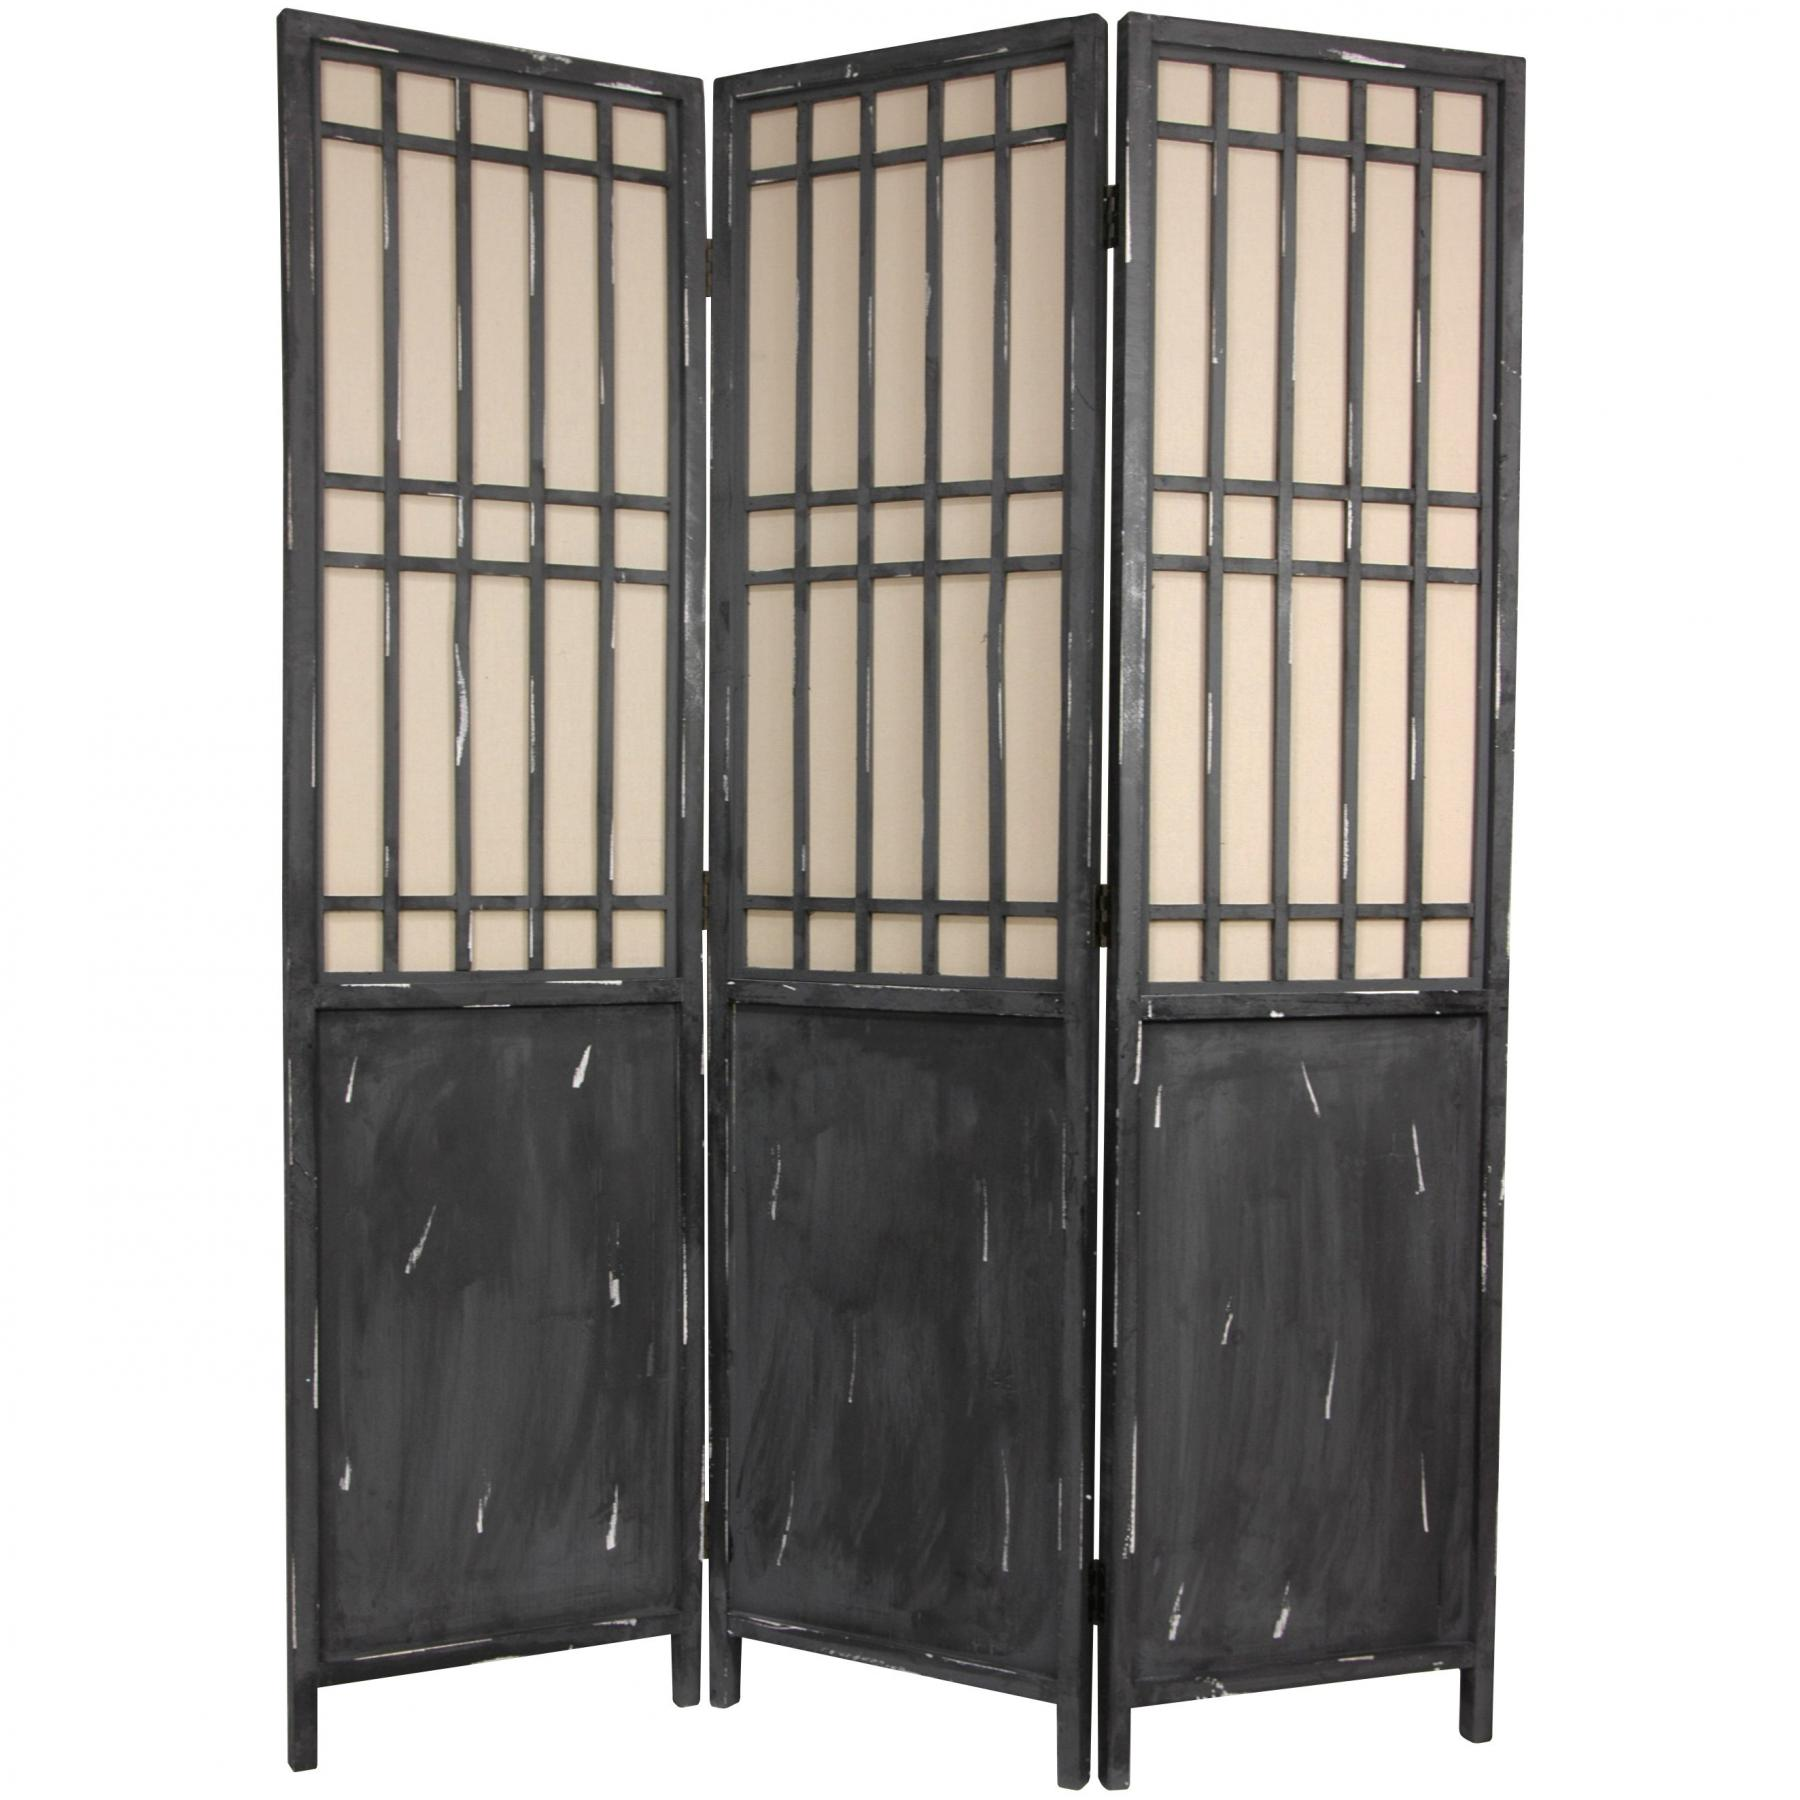 Room dividers and privacy screens over 1 500 unique styles available - Opaque room divider ...